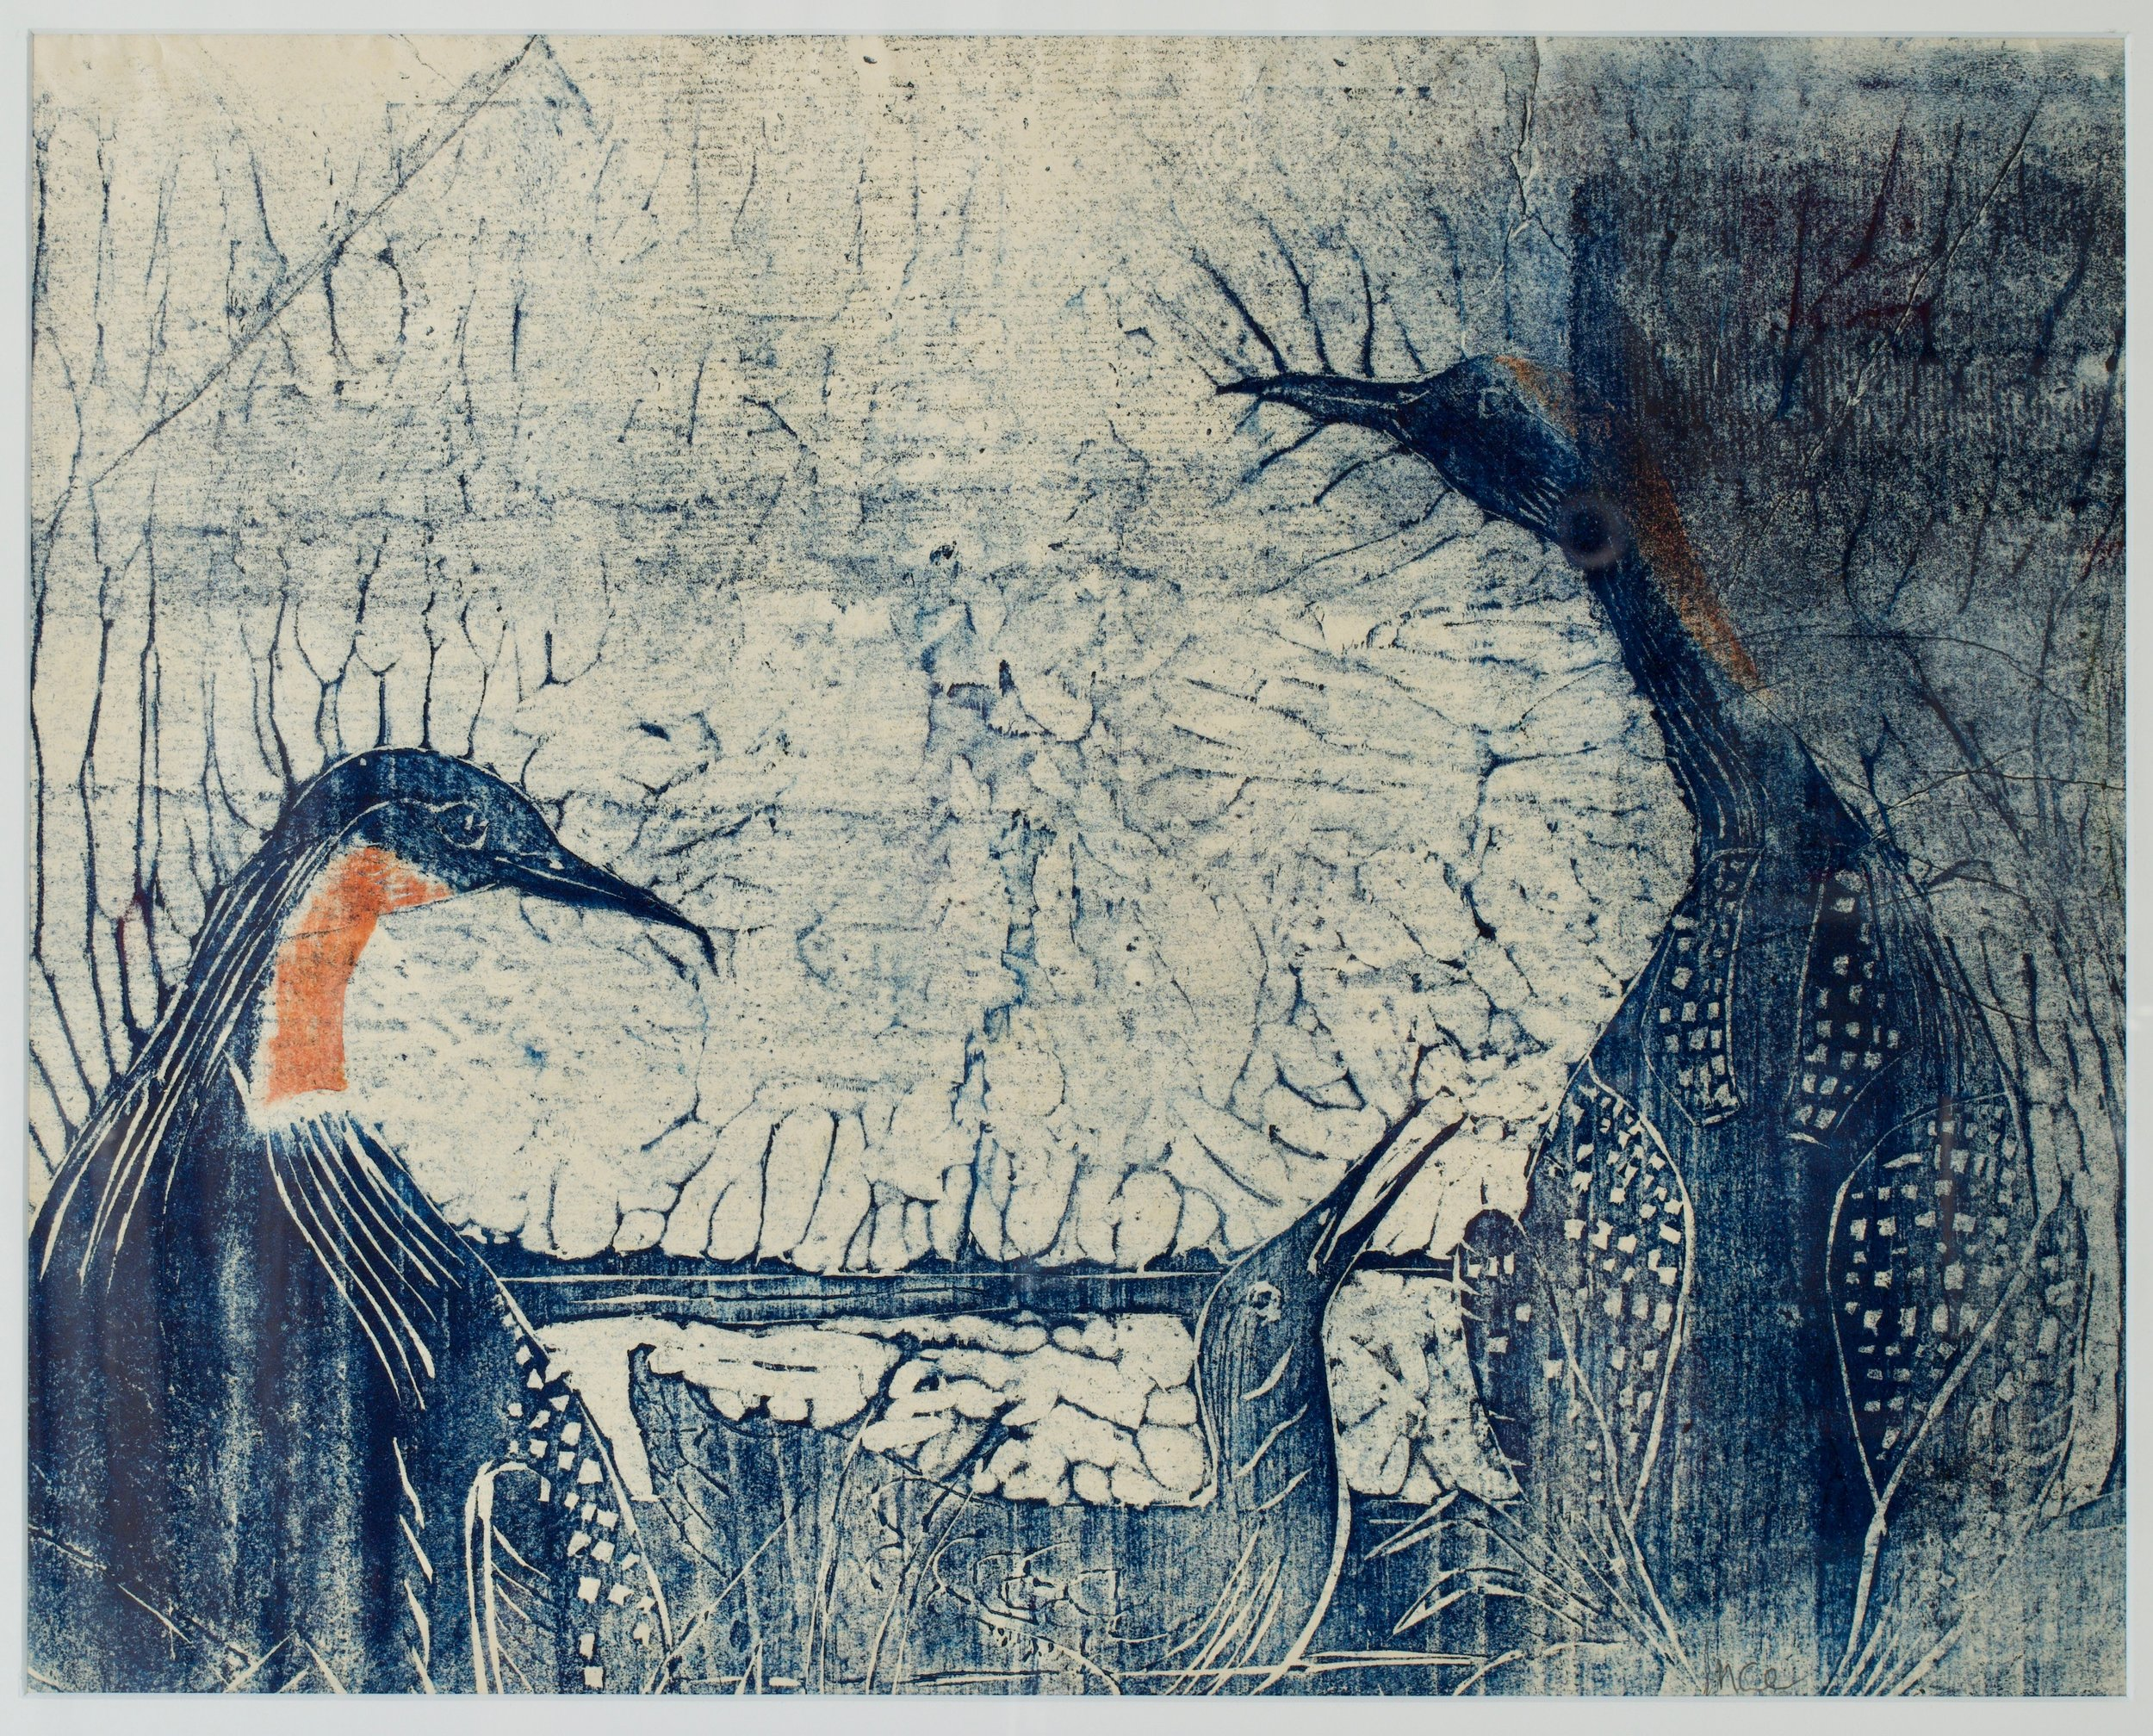 Michael Ince, Red Throated Loons, - after Audubon, 2003. Woodblock, oil, watercolor on paper,  21 x 29 inches (framed)